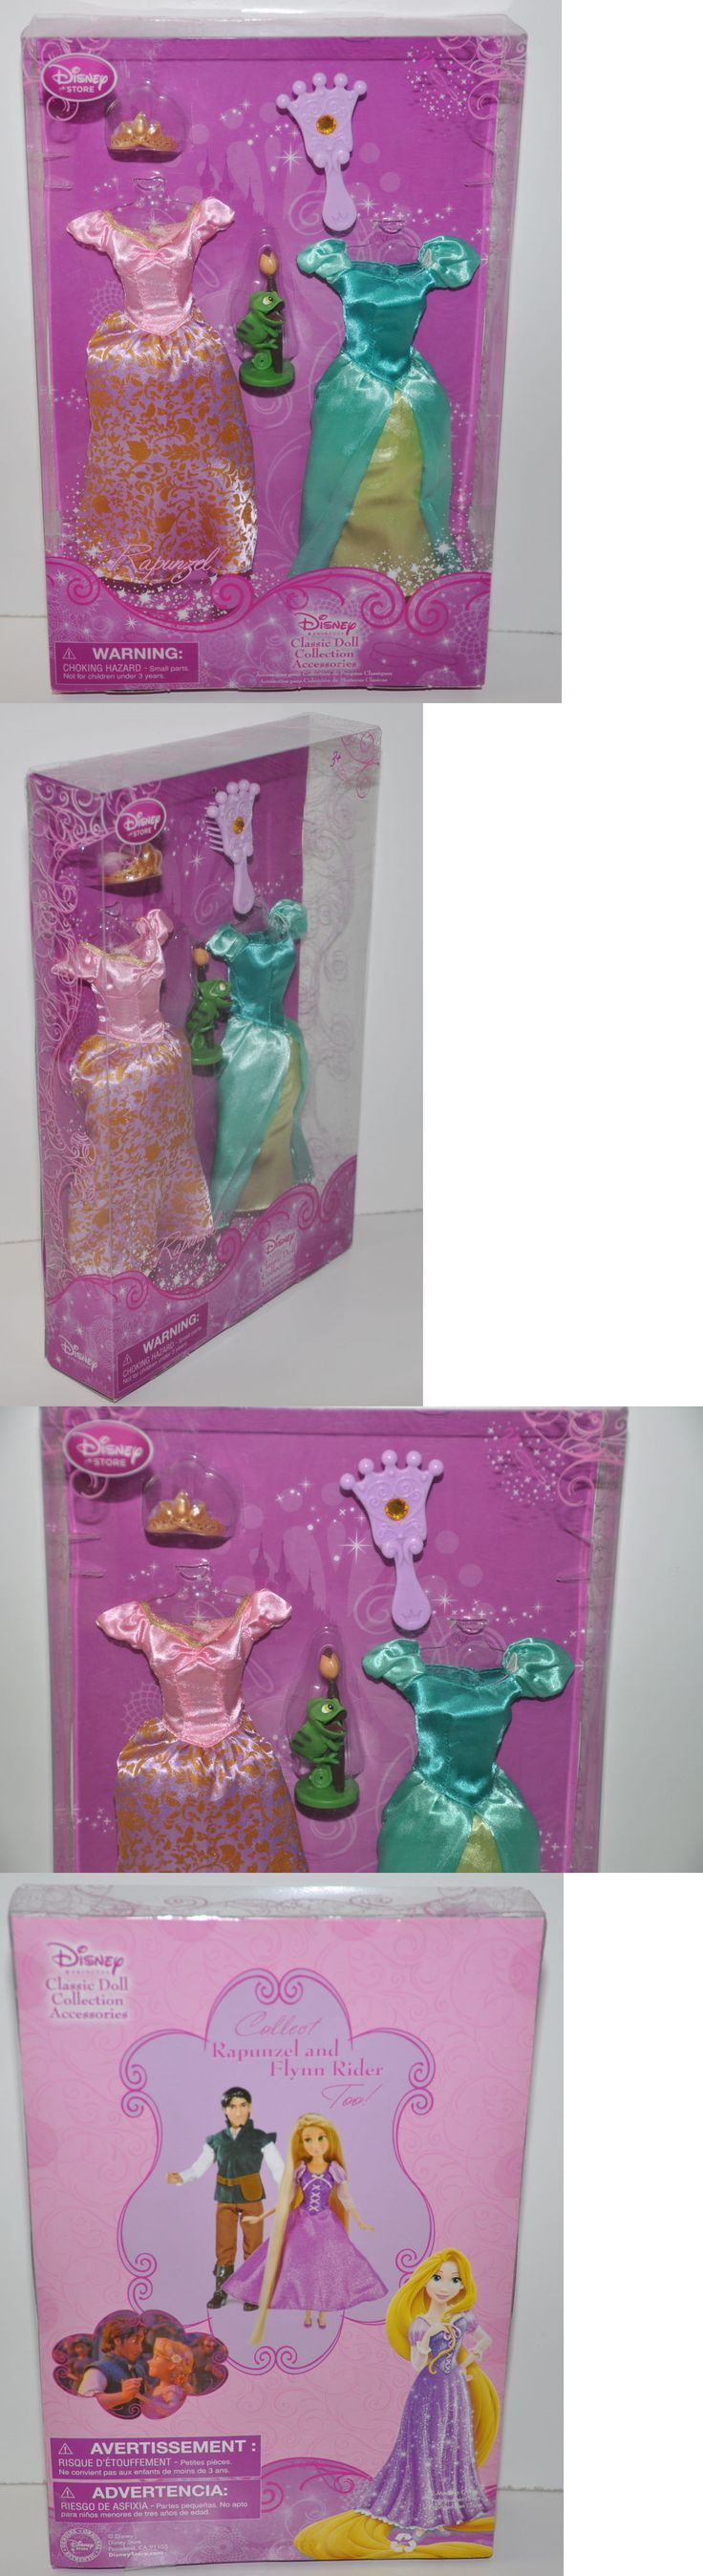 Disney Princesses 146030: Disney Store Classic Doll Collection Rapunzel Princess Wardrobe Clothes Pascal -> BUY IT NOW ONLY: $49.95 on eBay!